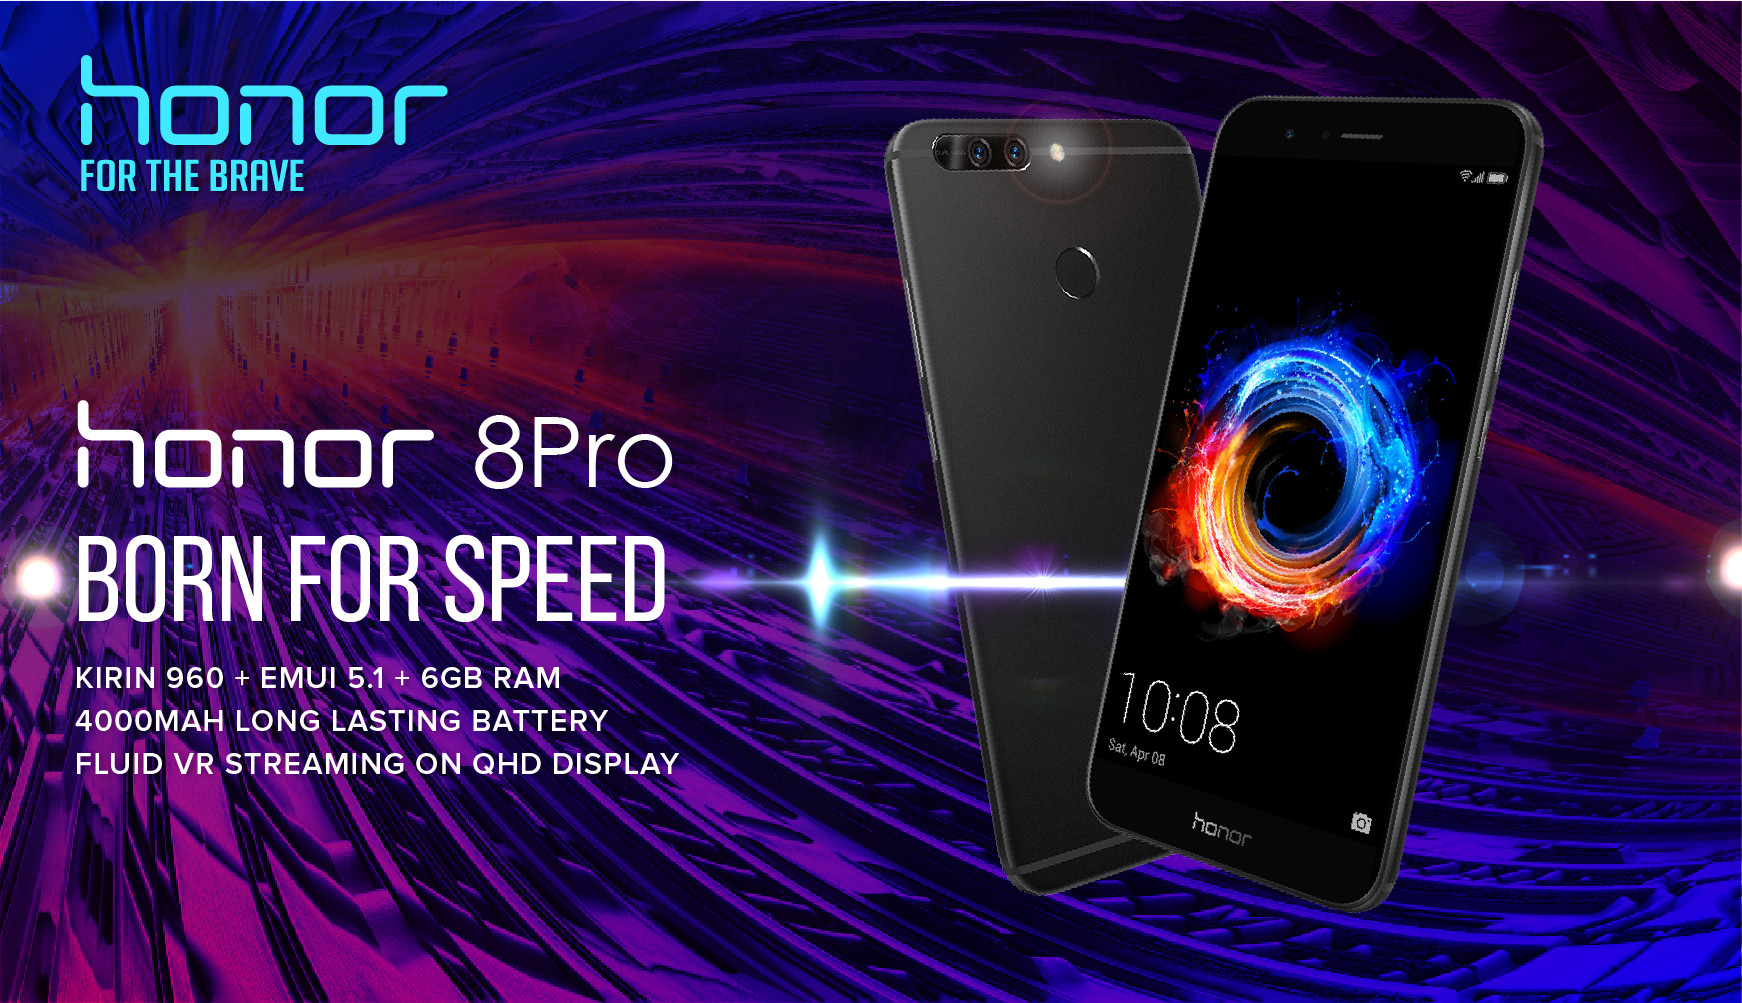 Honor Bee 2 budget smartphone launched at Rs. 7499 in India